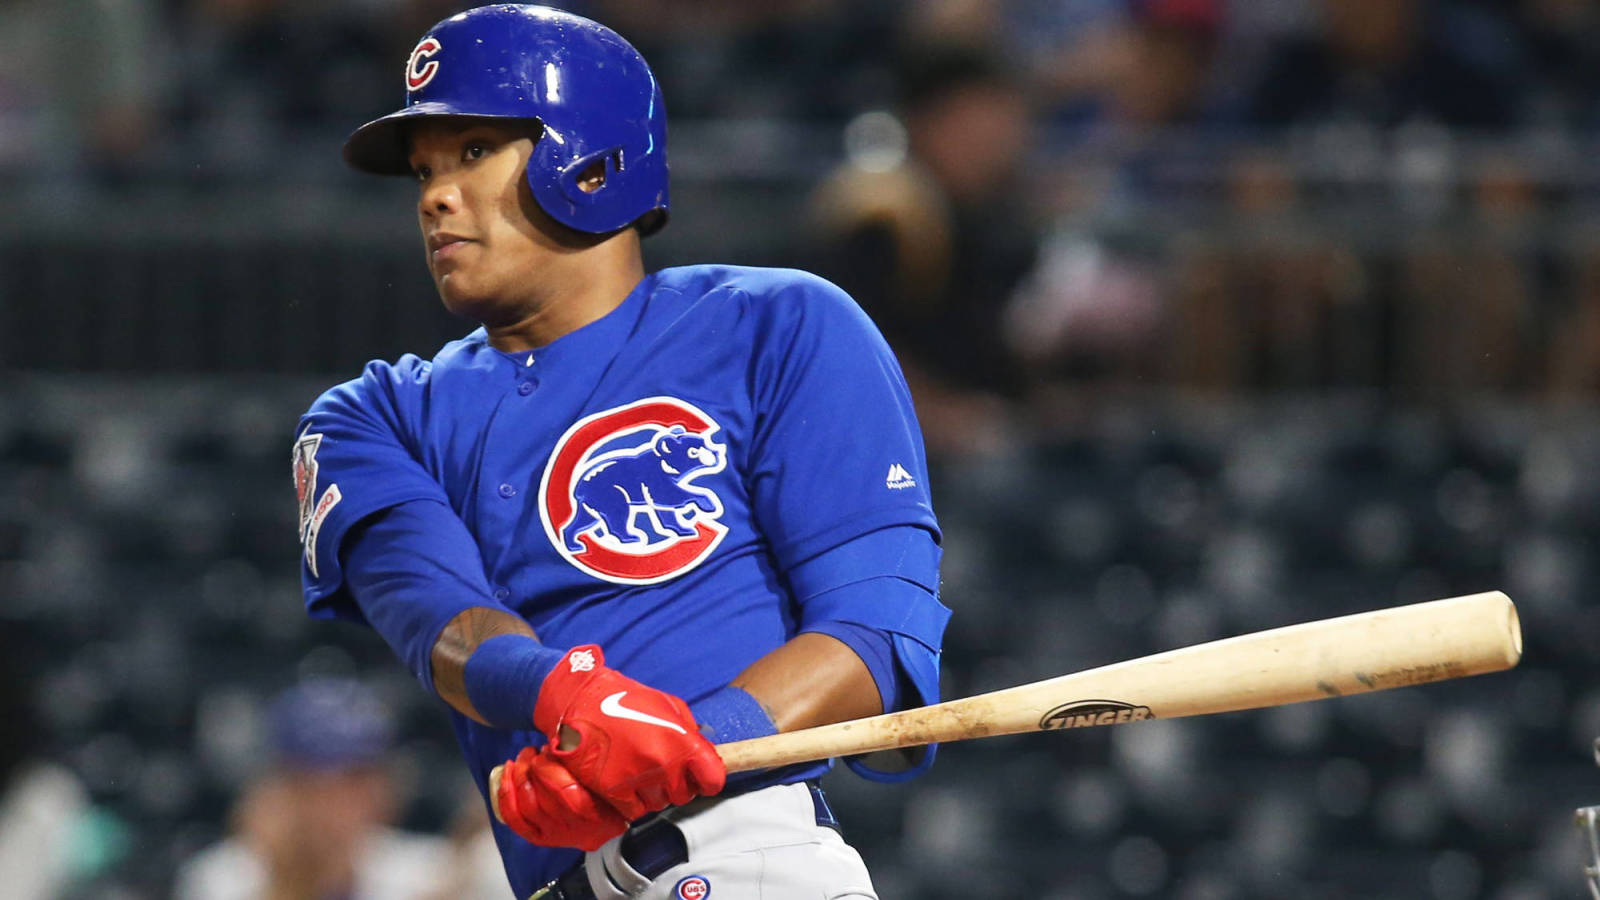 Former Cubs All-Star Addison Russell heads to KBO